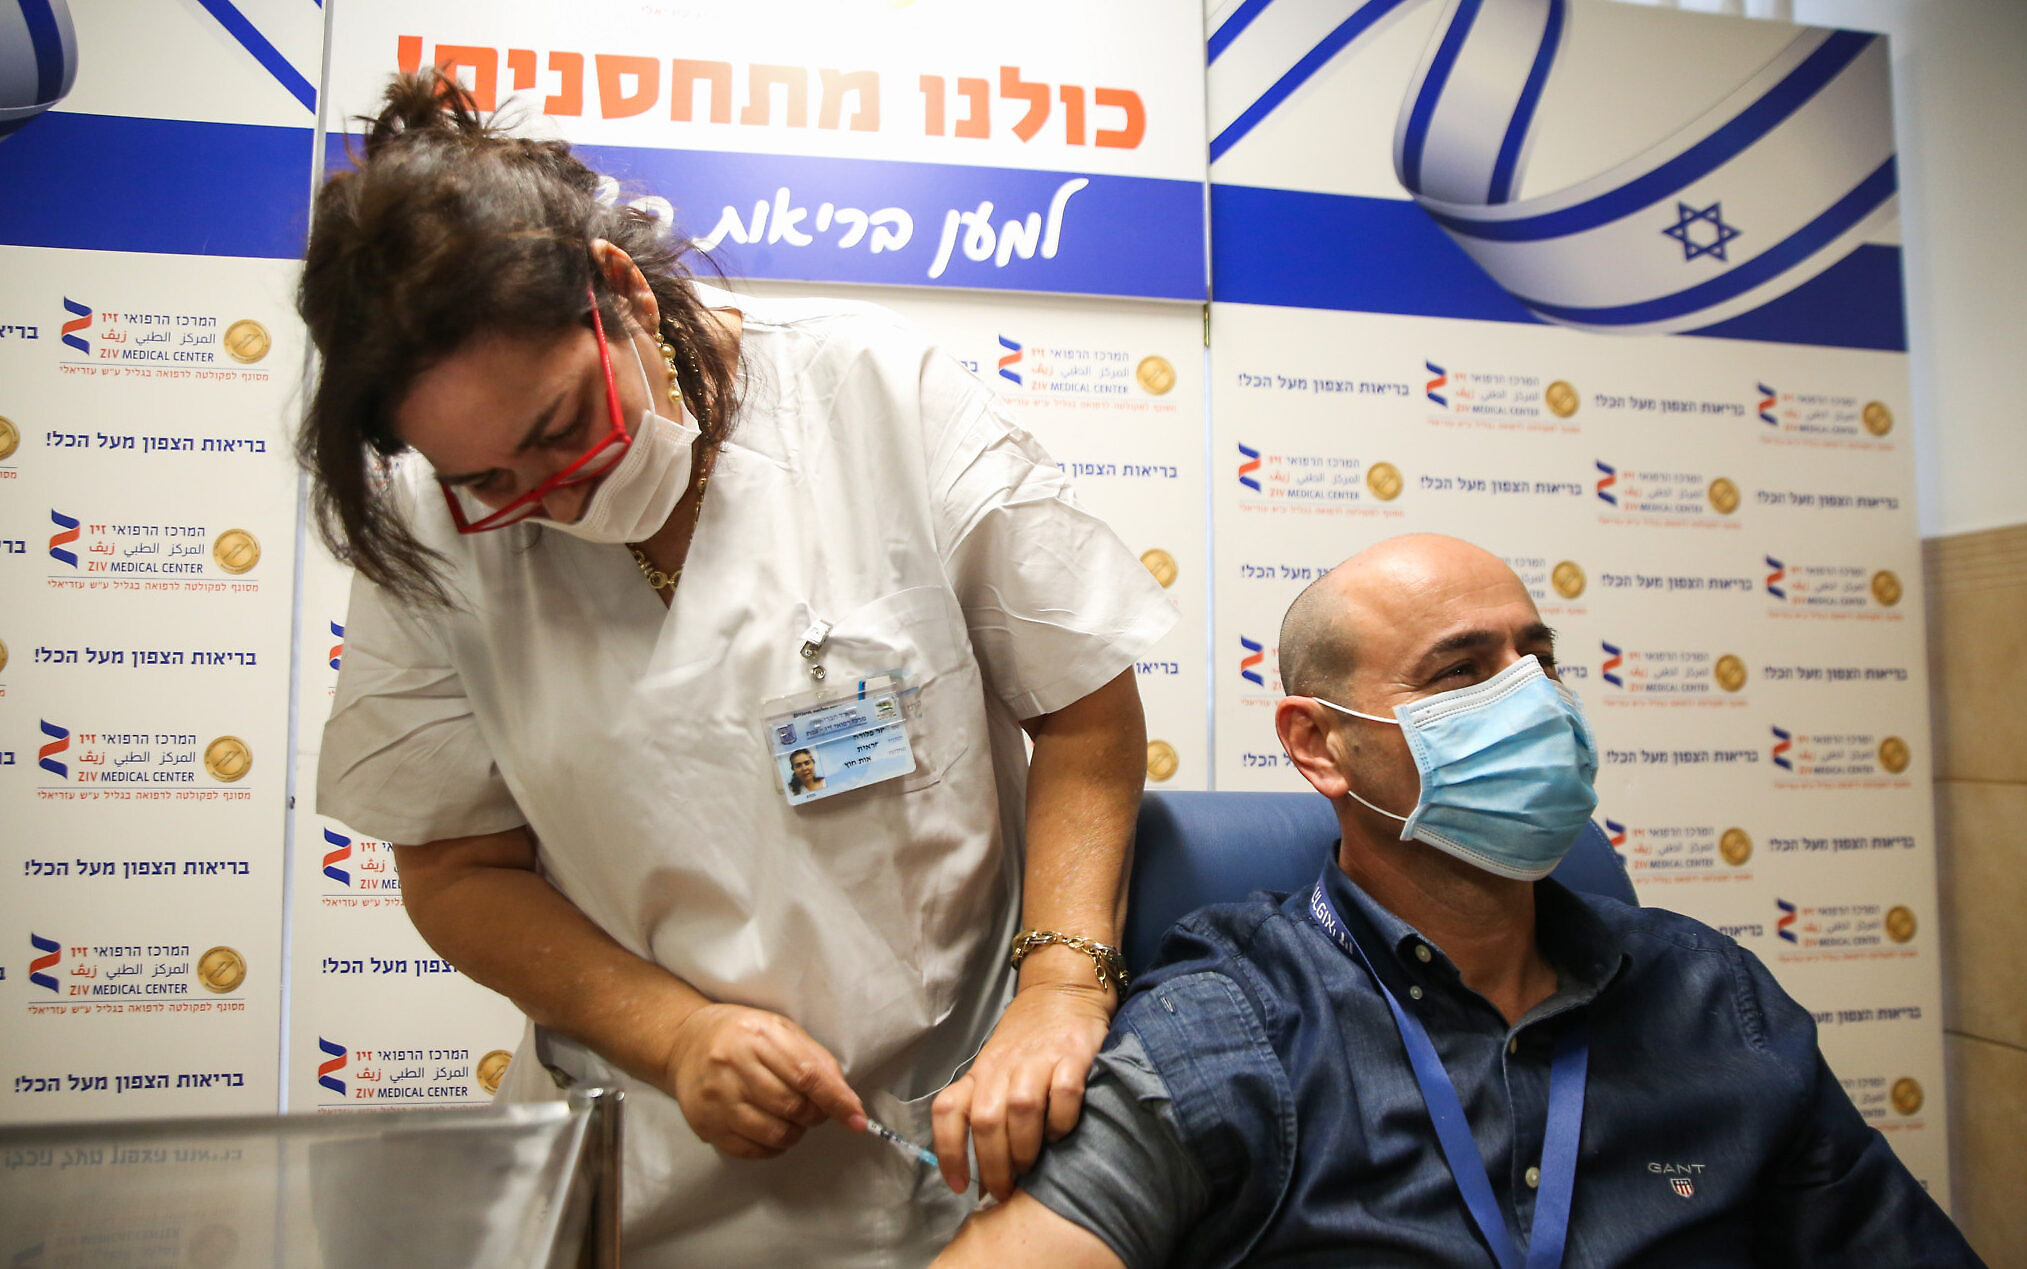 A medical worker receives a COVID-19 vaccine at Ziv Medical Center in the northern city of Safed, December 21, 2020. (David Cohen/Flash90)